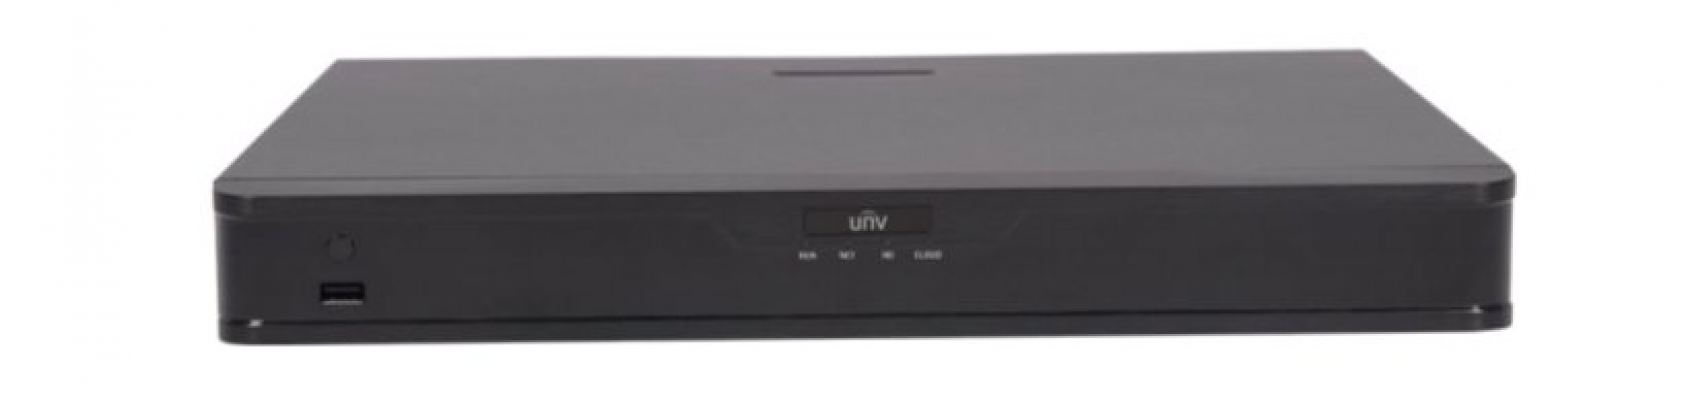 NVR 302 SP SERIES